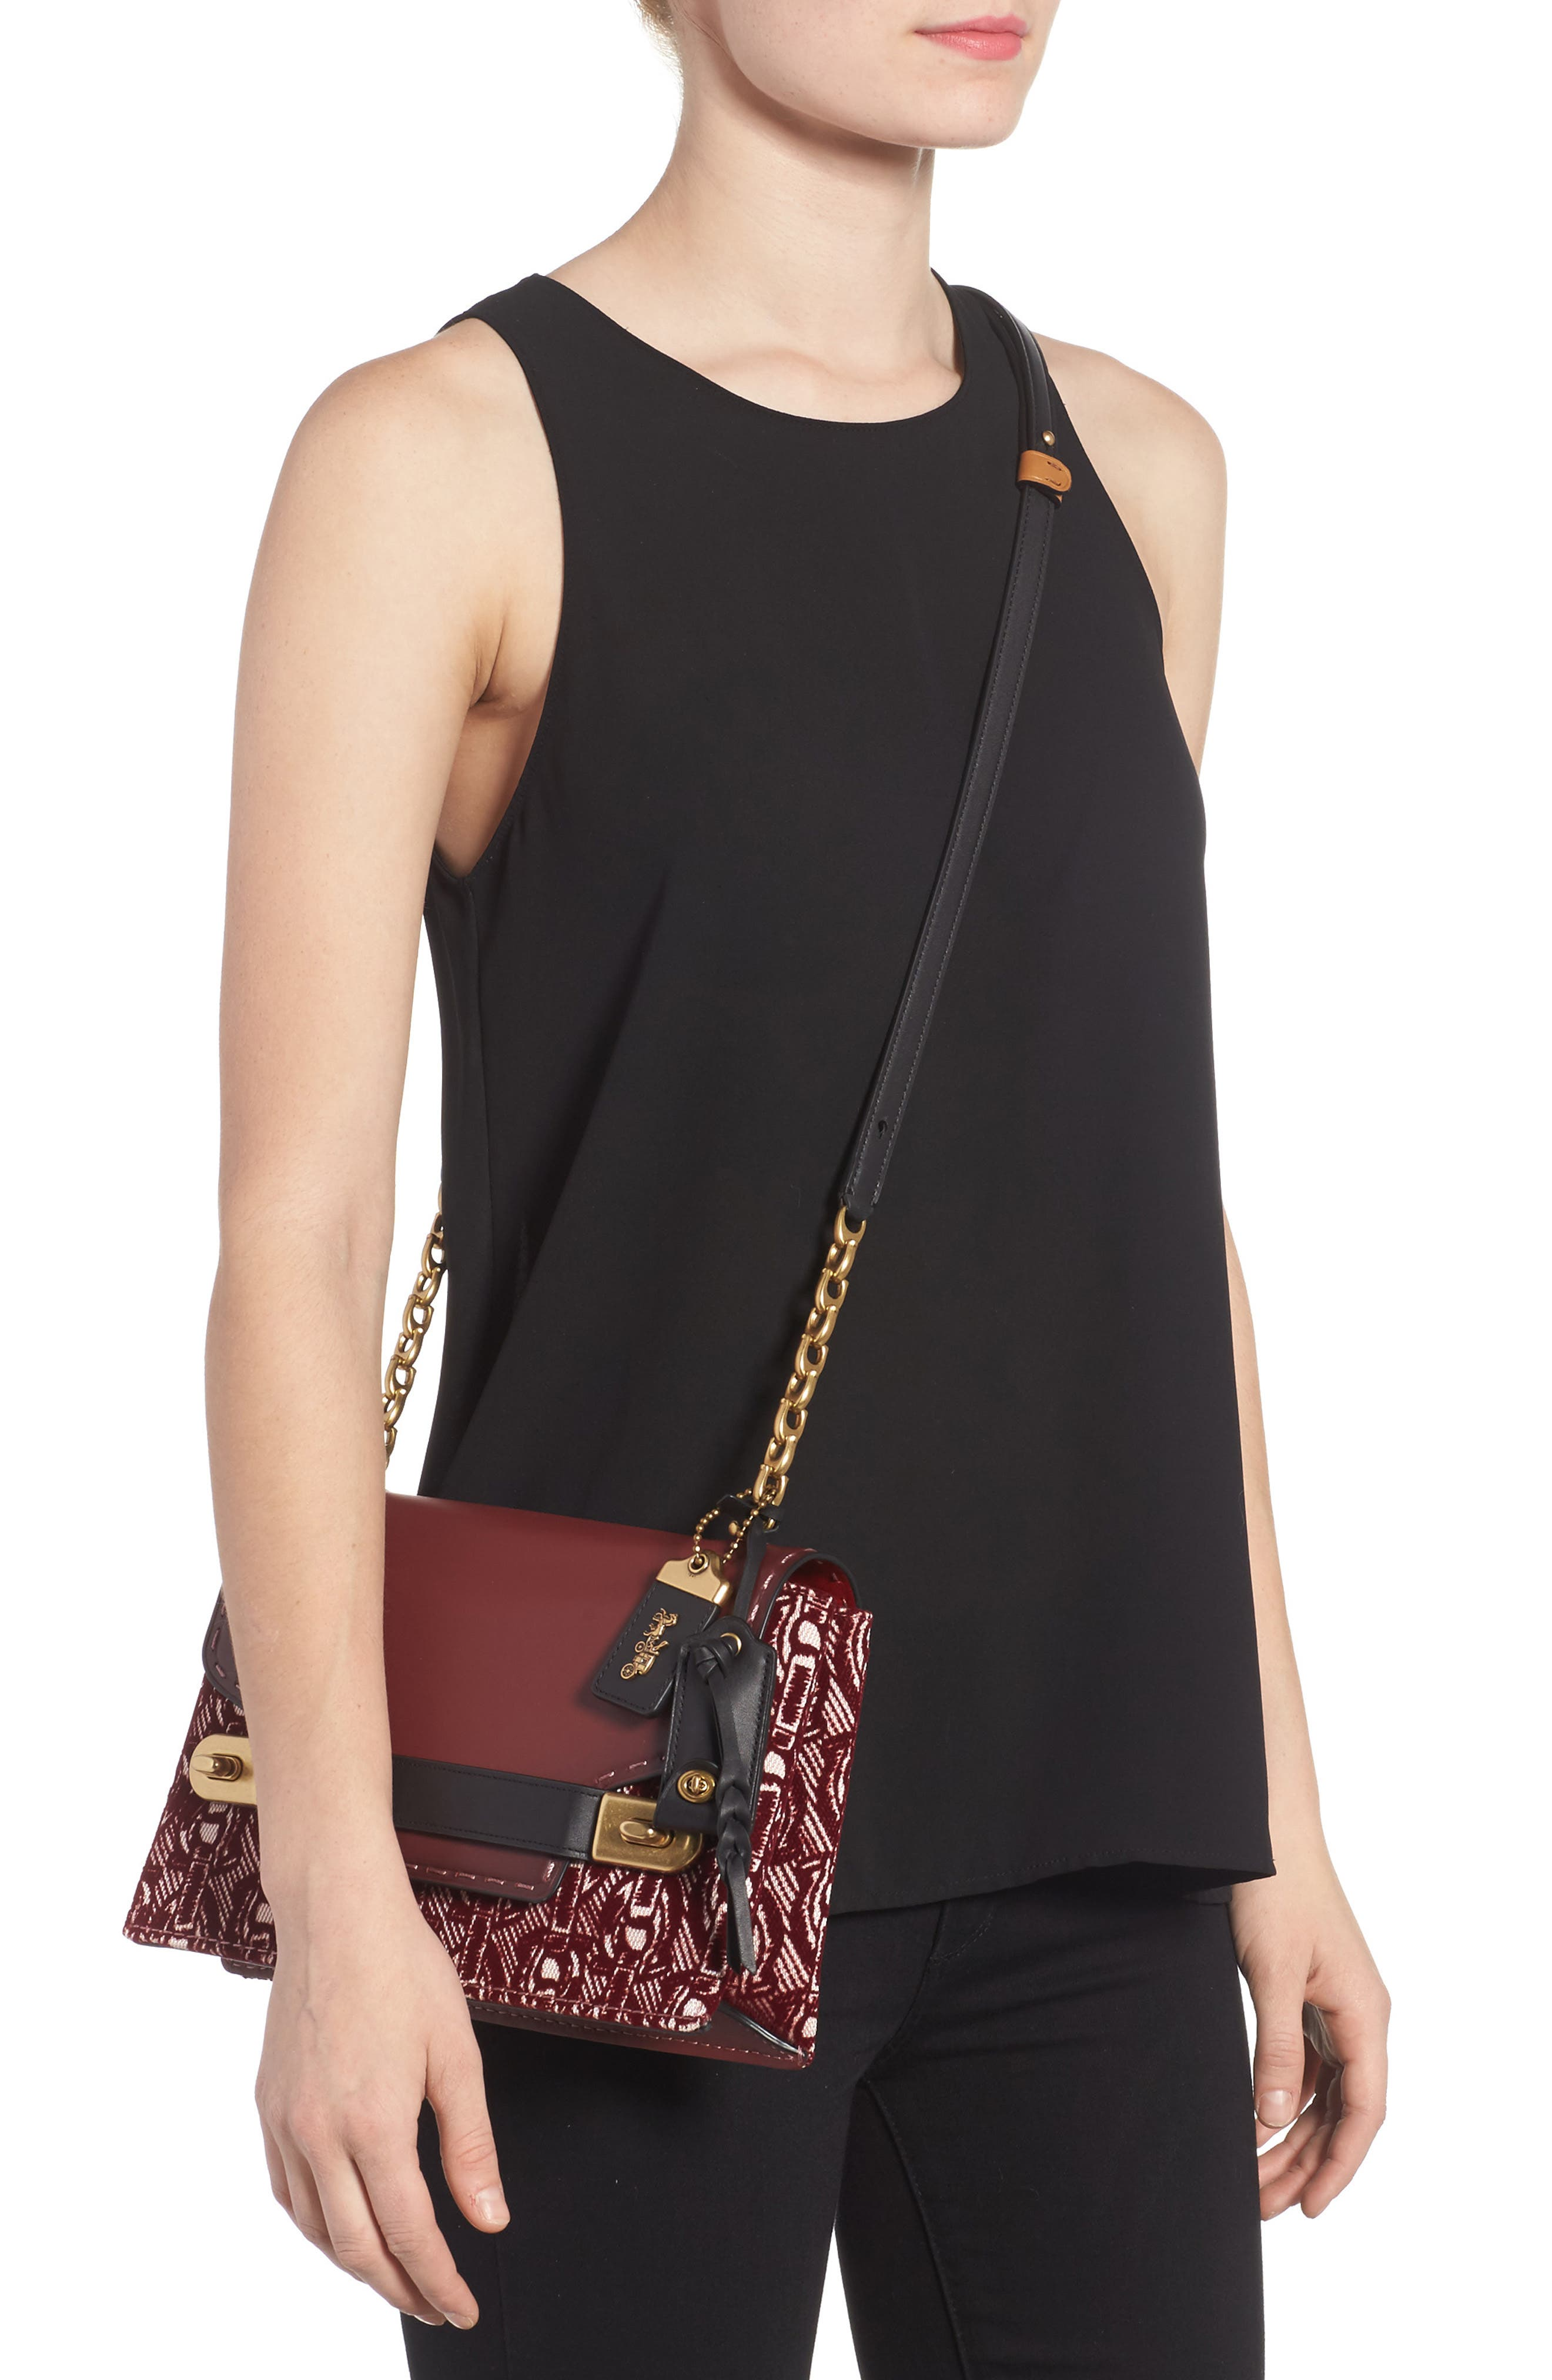 Swagger Chain Leather Crossbody Bag,                             Alternate thumbnail 2, color,                             Bordeaux